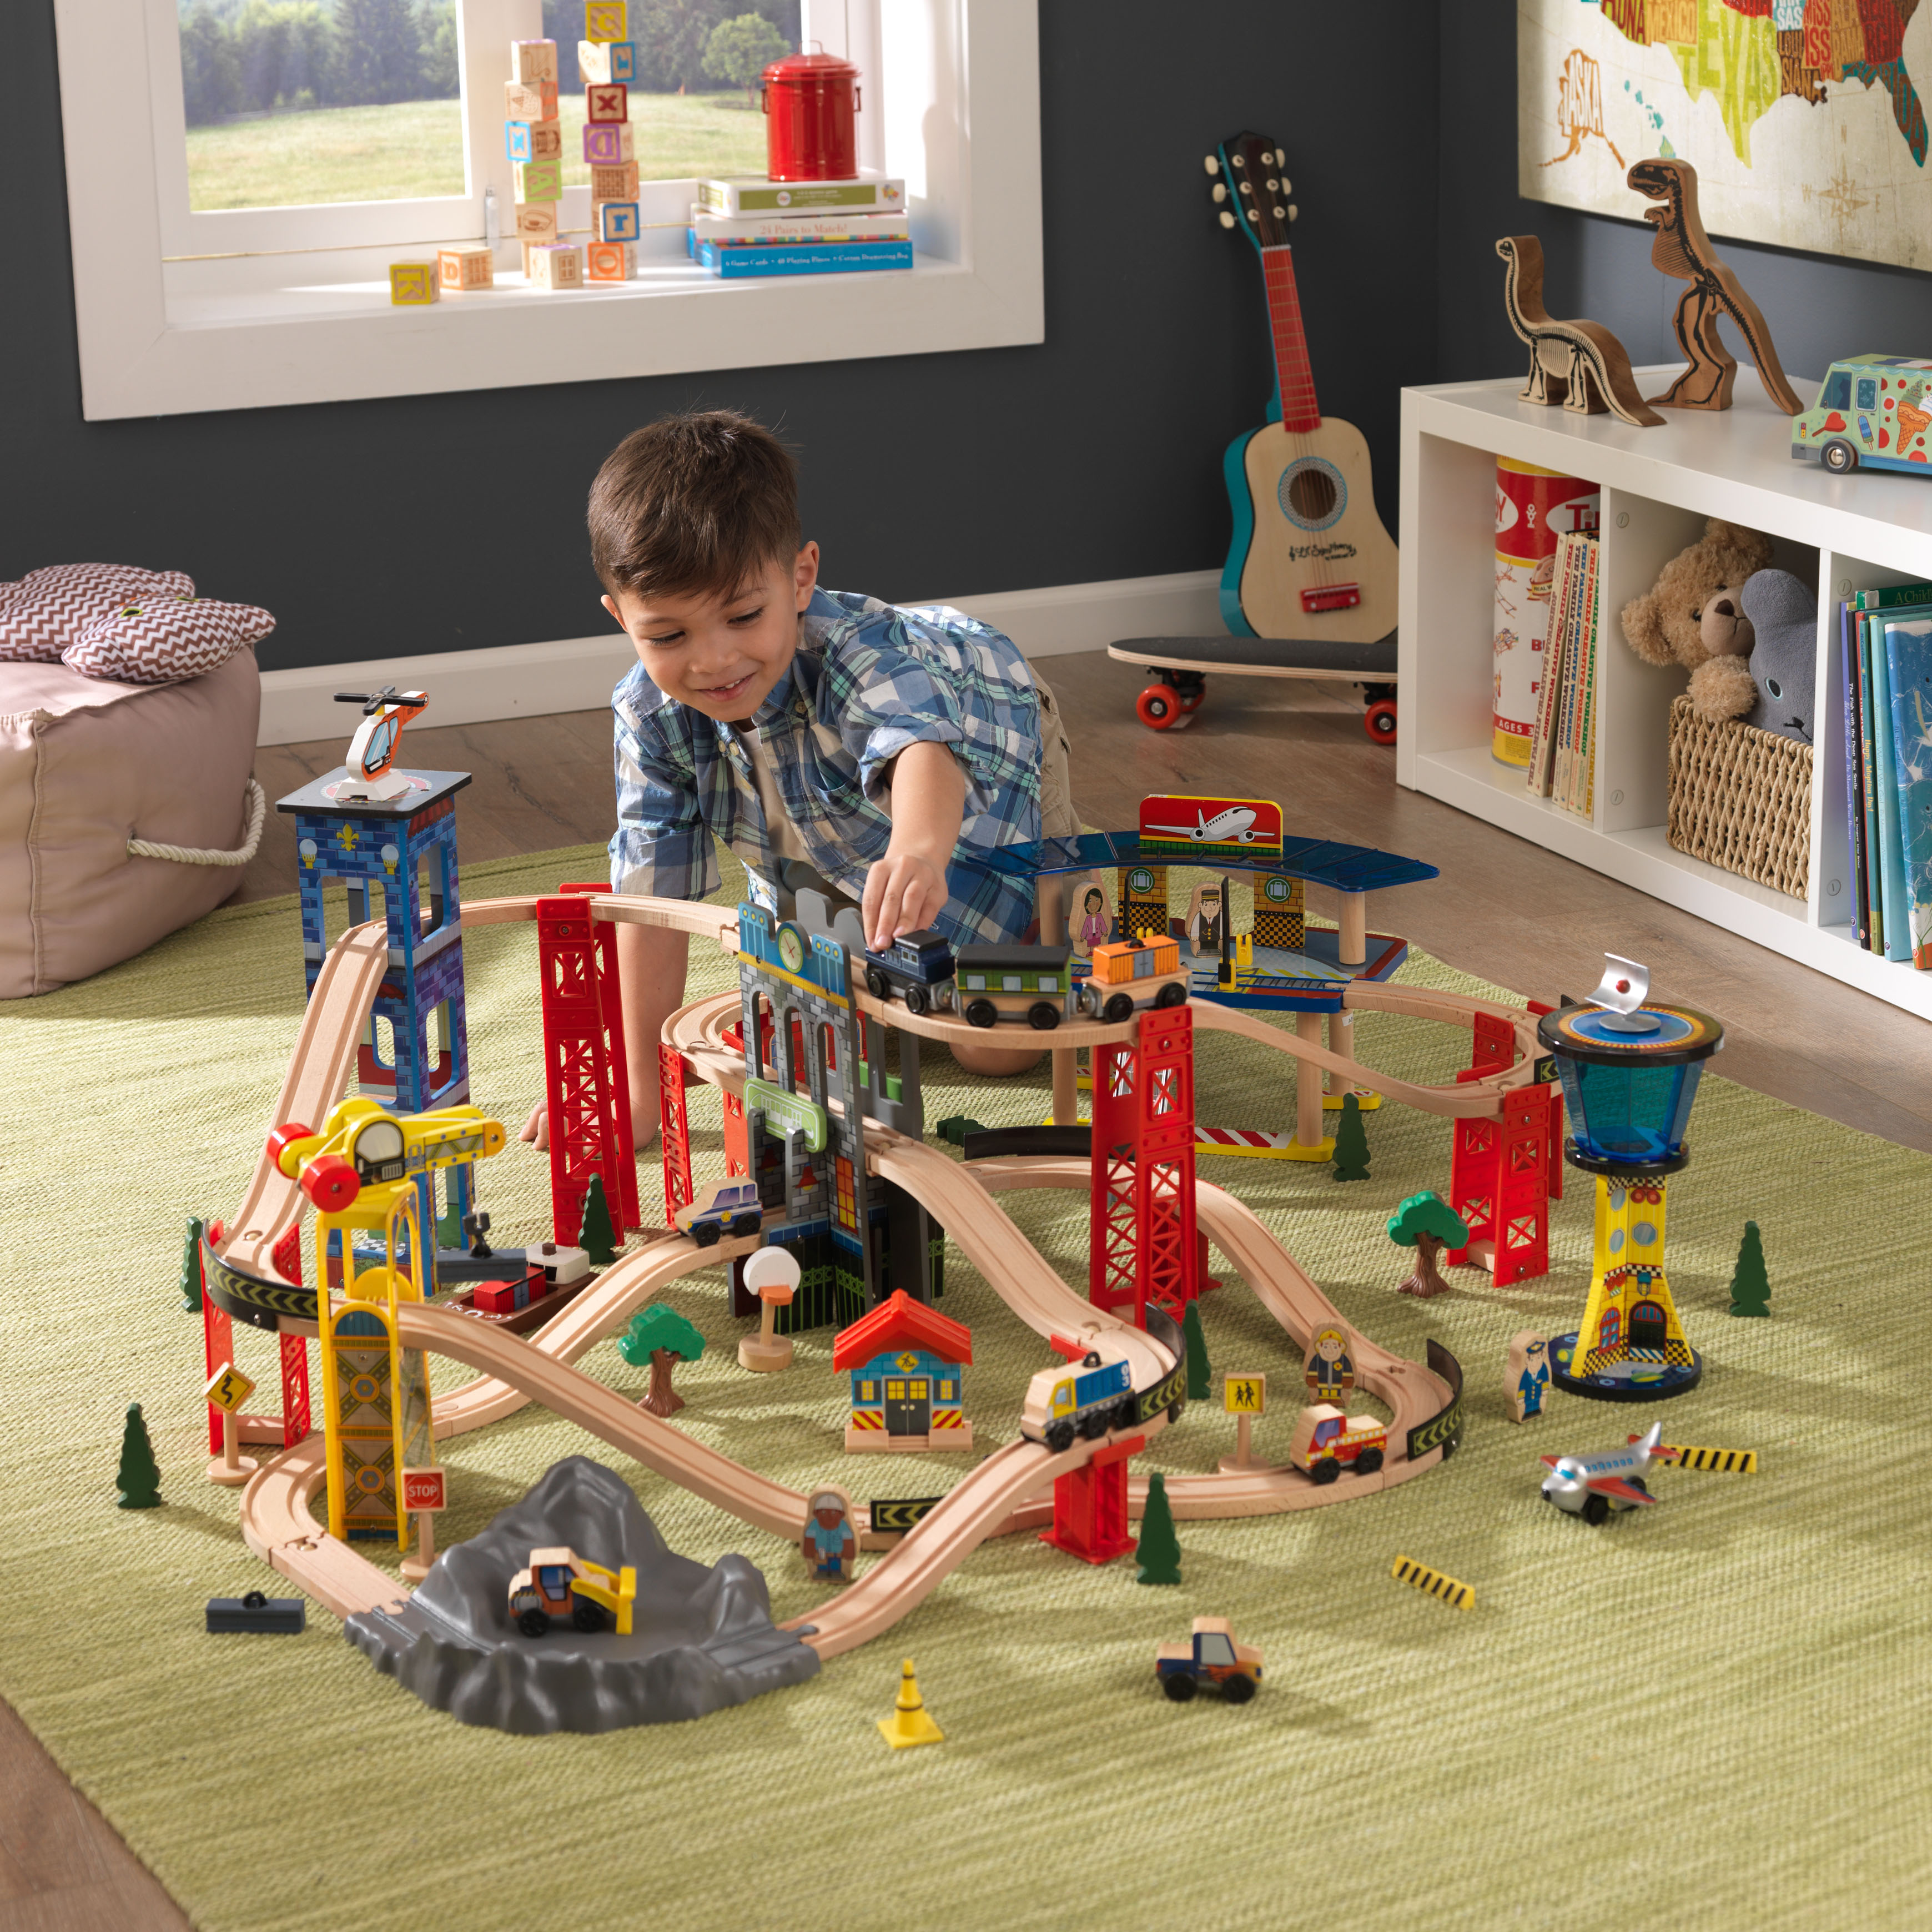 KidKraft Super Highway Train Set with 80+ accessories included by KidKraft